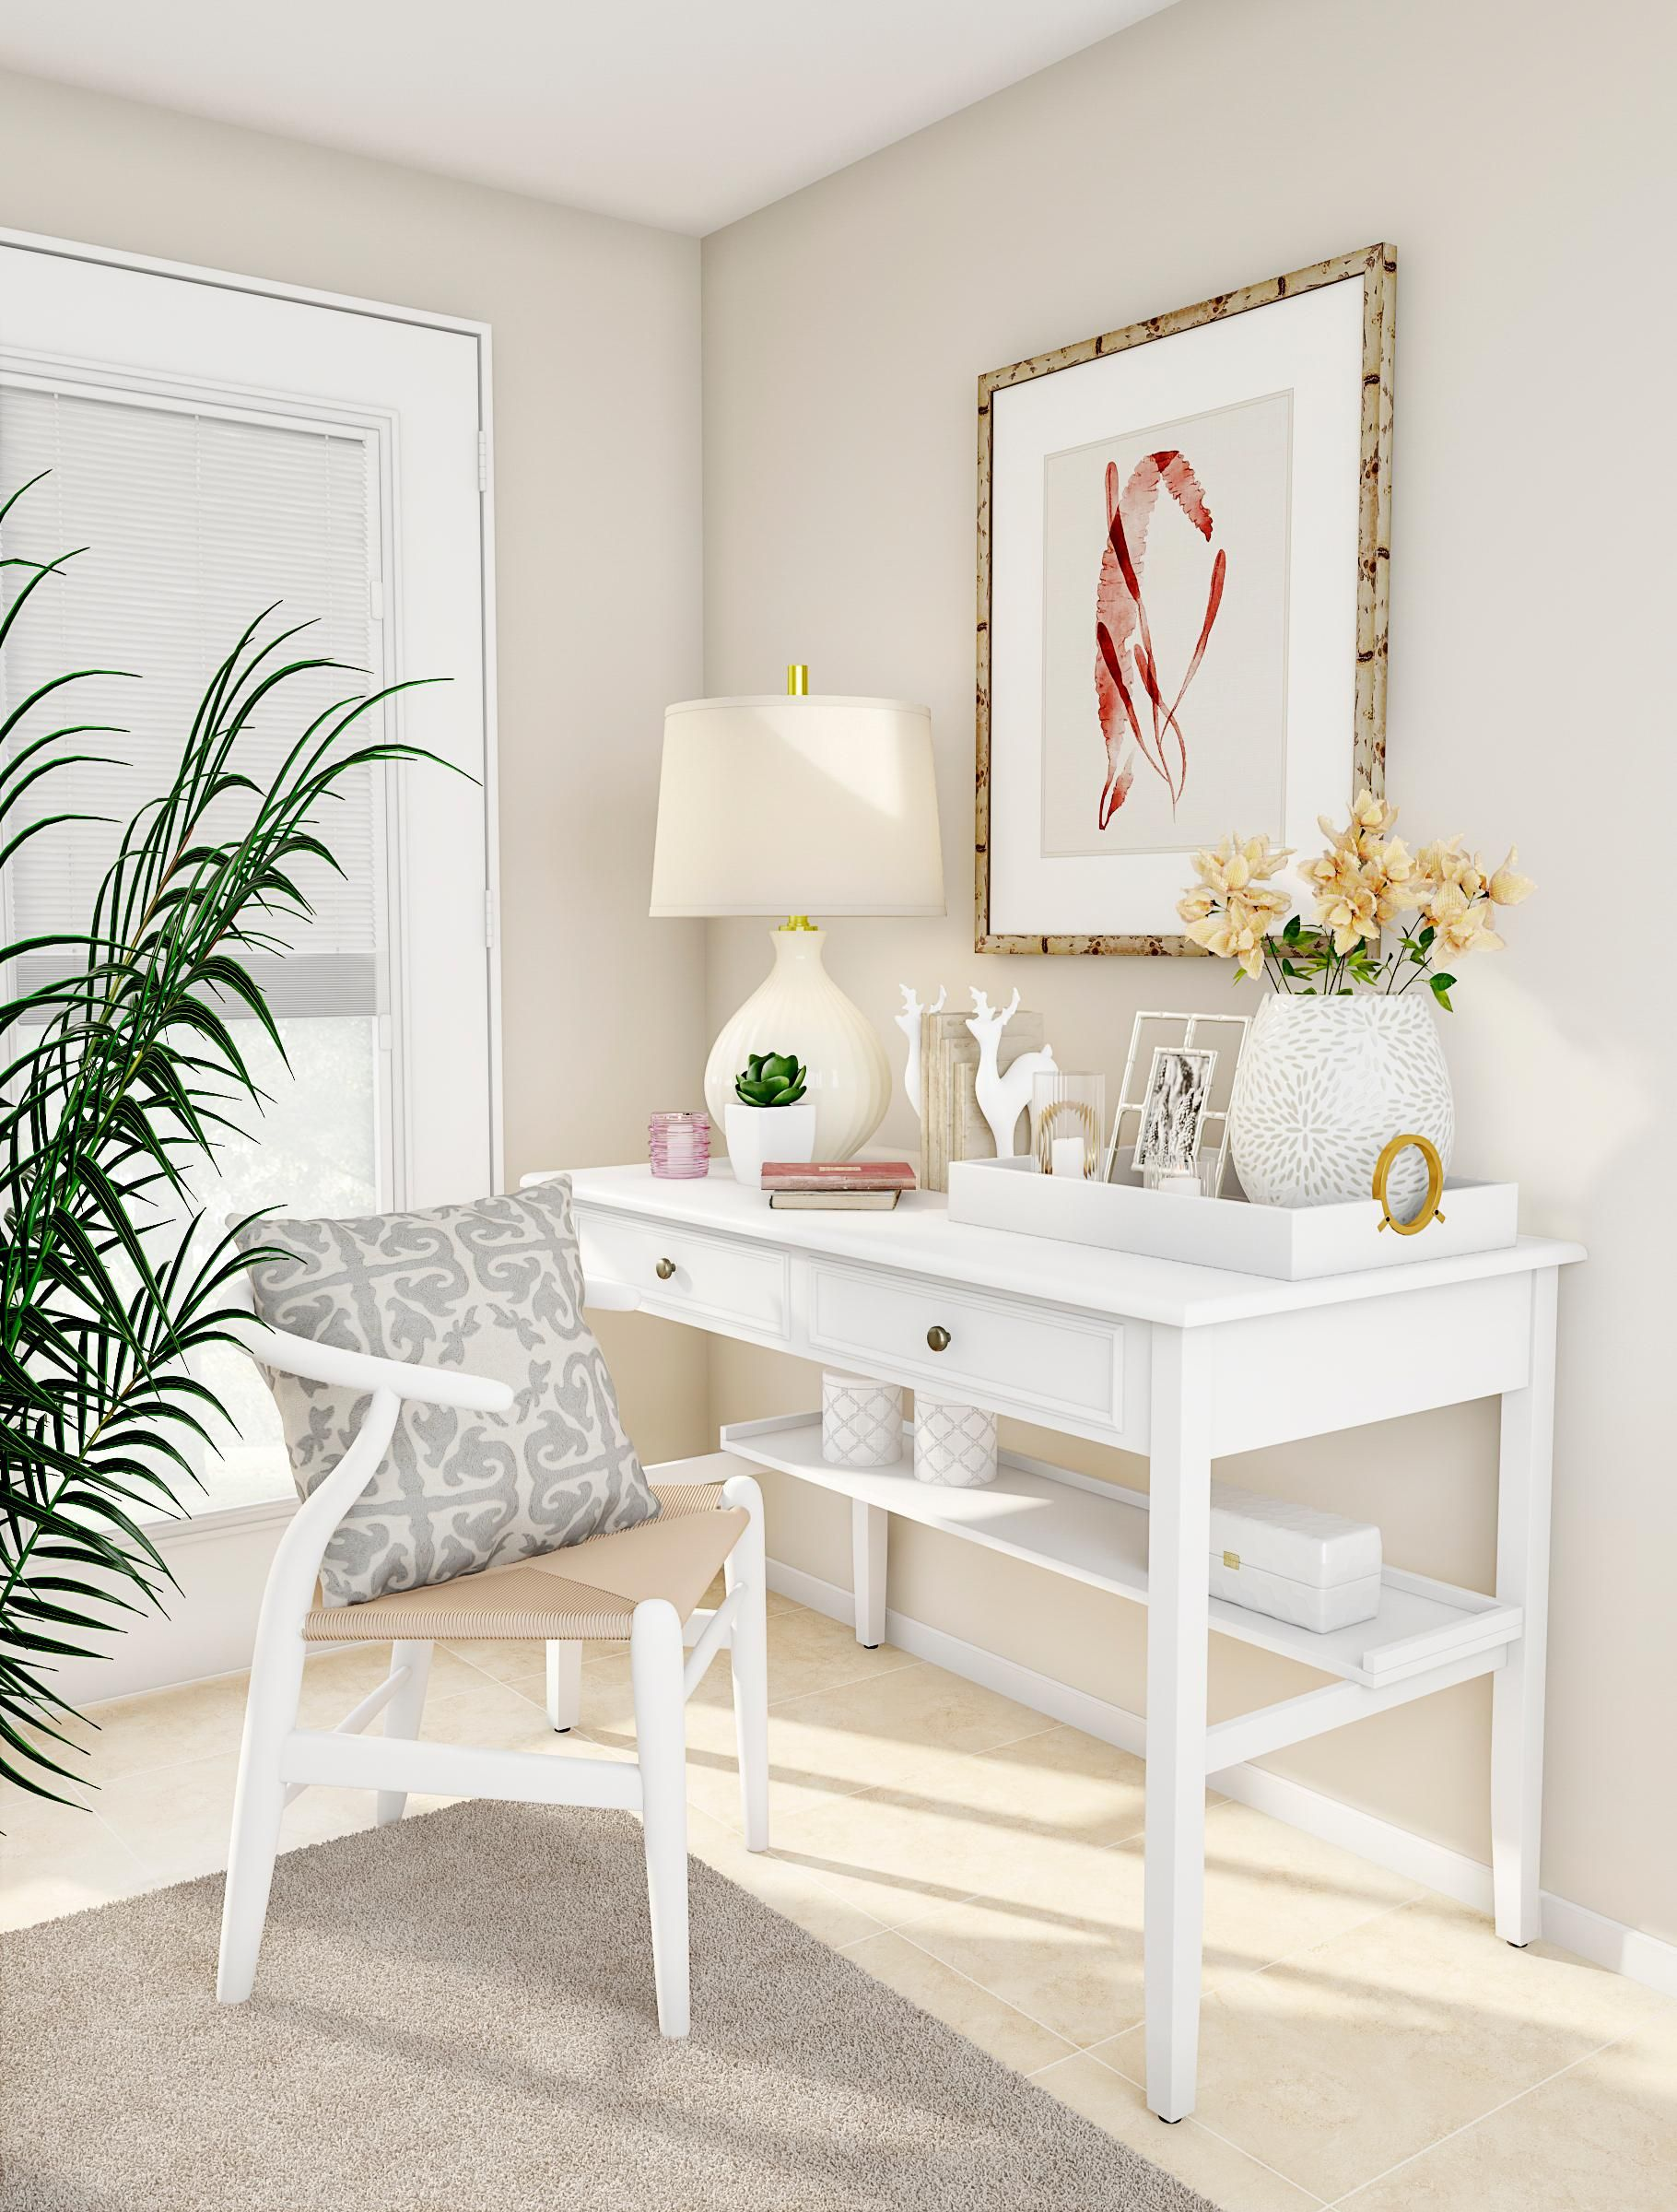 claim a space for peaceful productivity this home office is light rh pinterest com